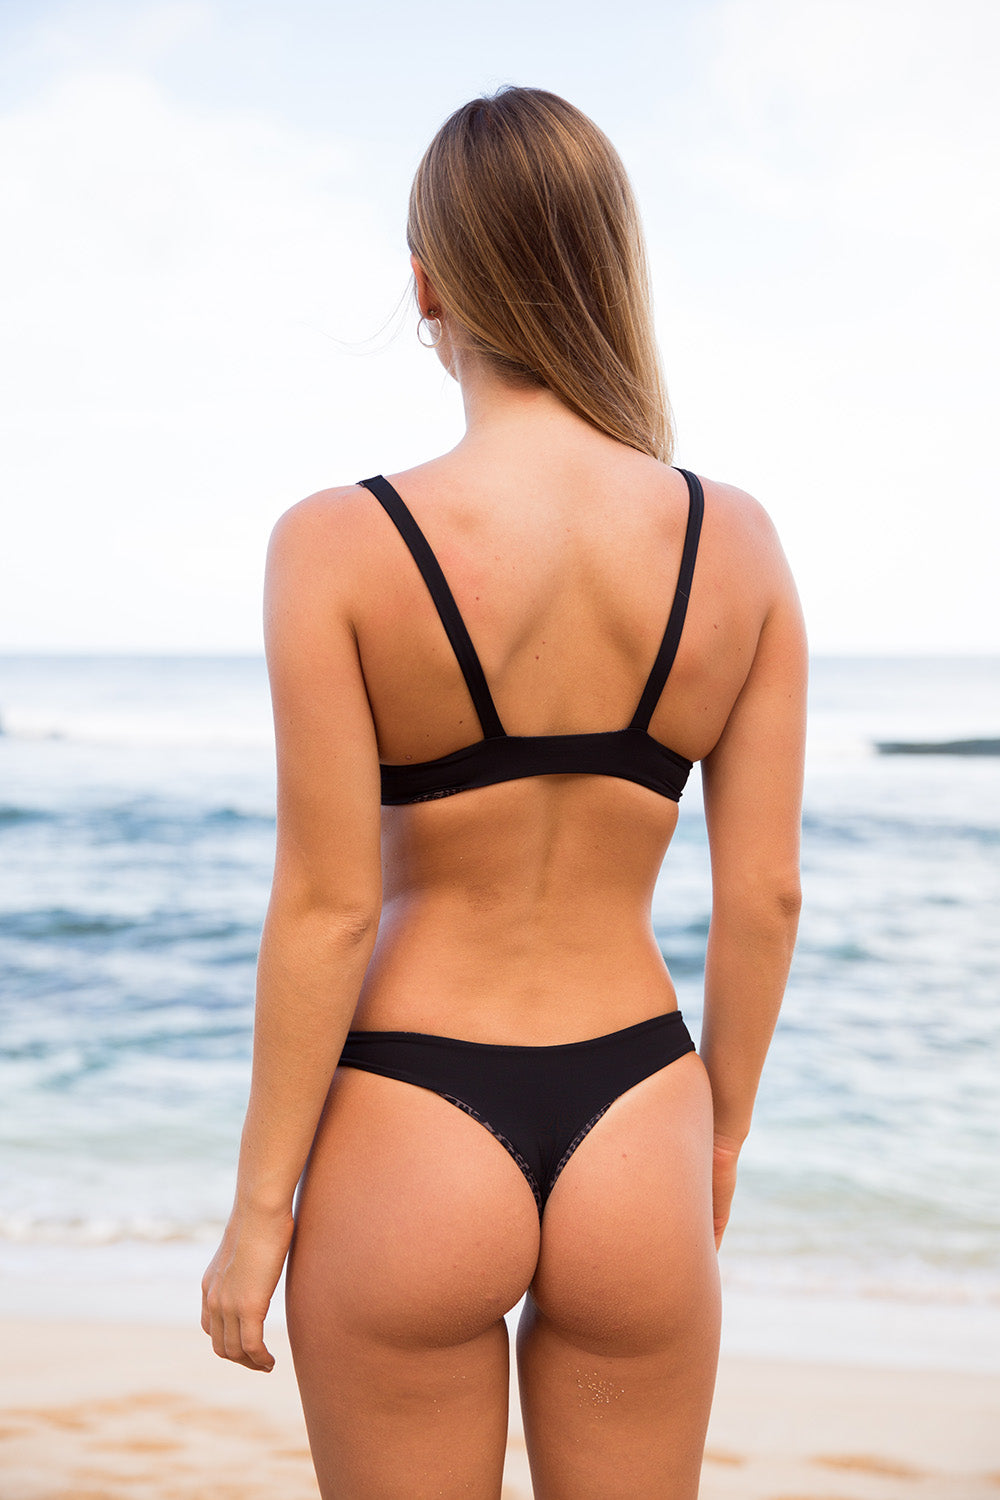 ACACIA Swimwear 2020 Ho'okipa Bottom in Onyx